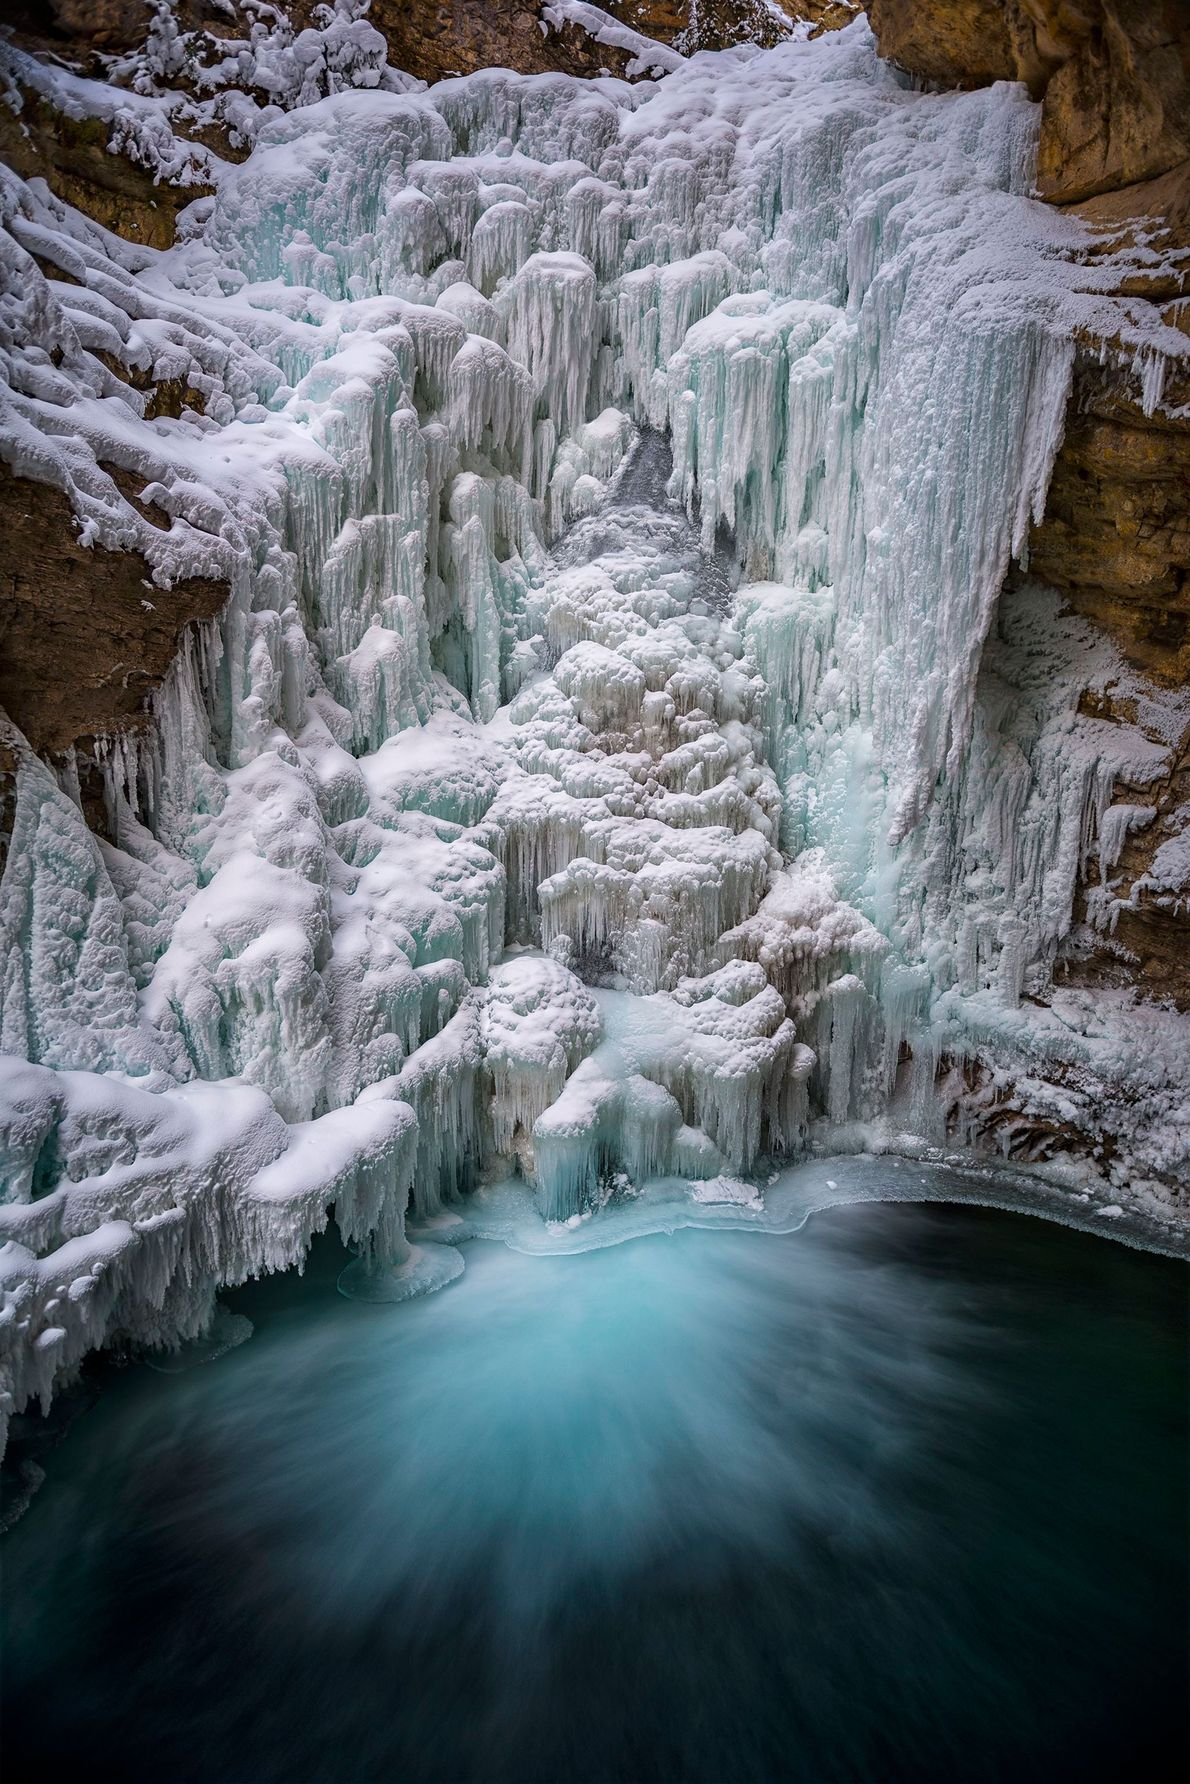 Water still runs beneath the icy shell of this waterfall in Banff National Park.